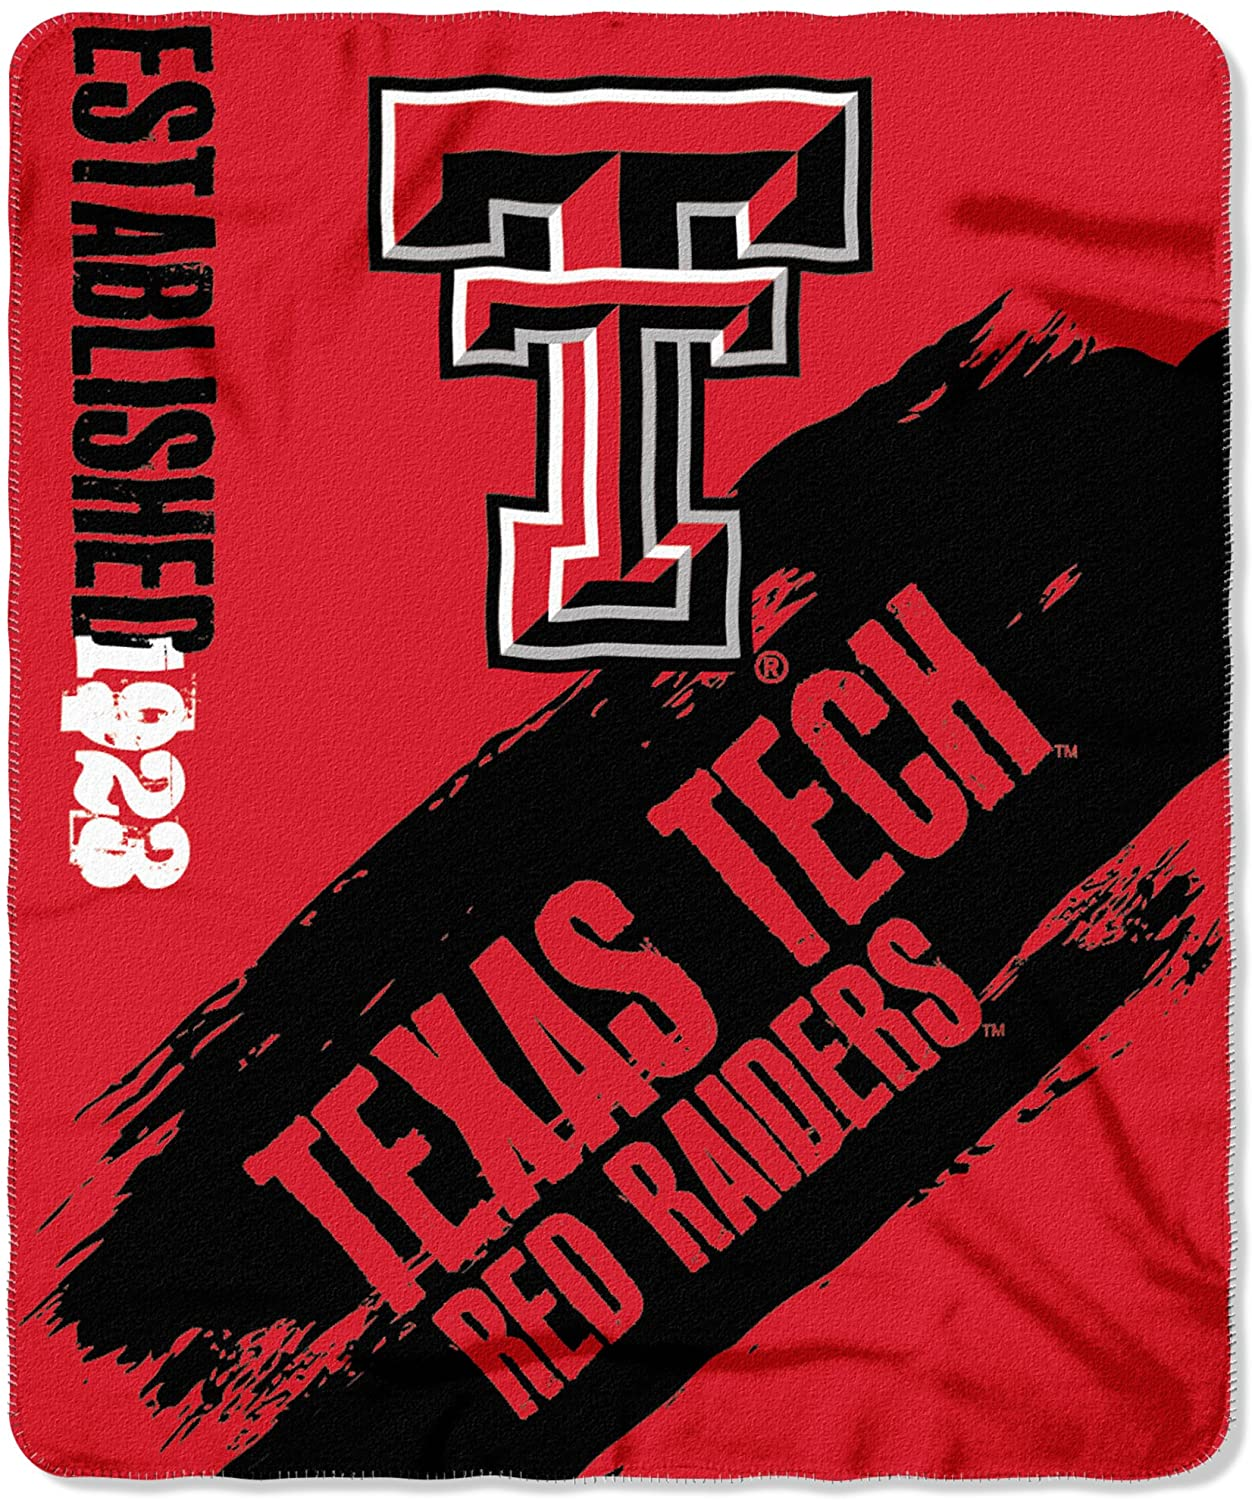 Officially Licensed Ncaa Printed Throw Texas Tech Red Raiders Fleece Blanket